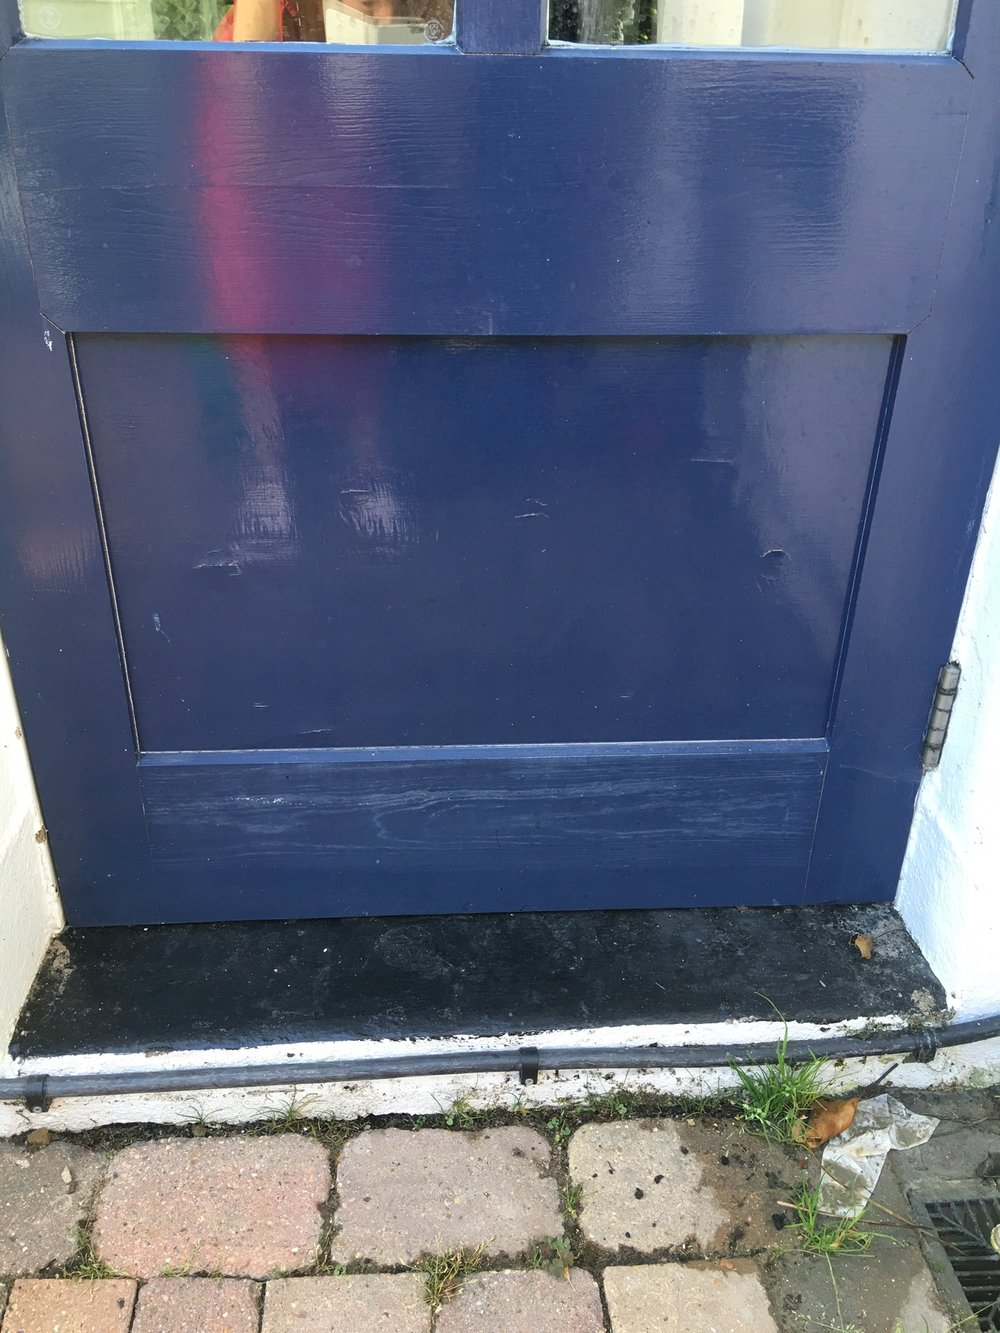 The 'before' back door, which was fine, but a bit tired and boring.